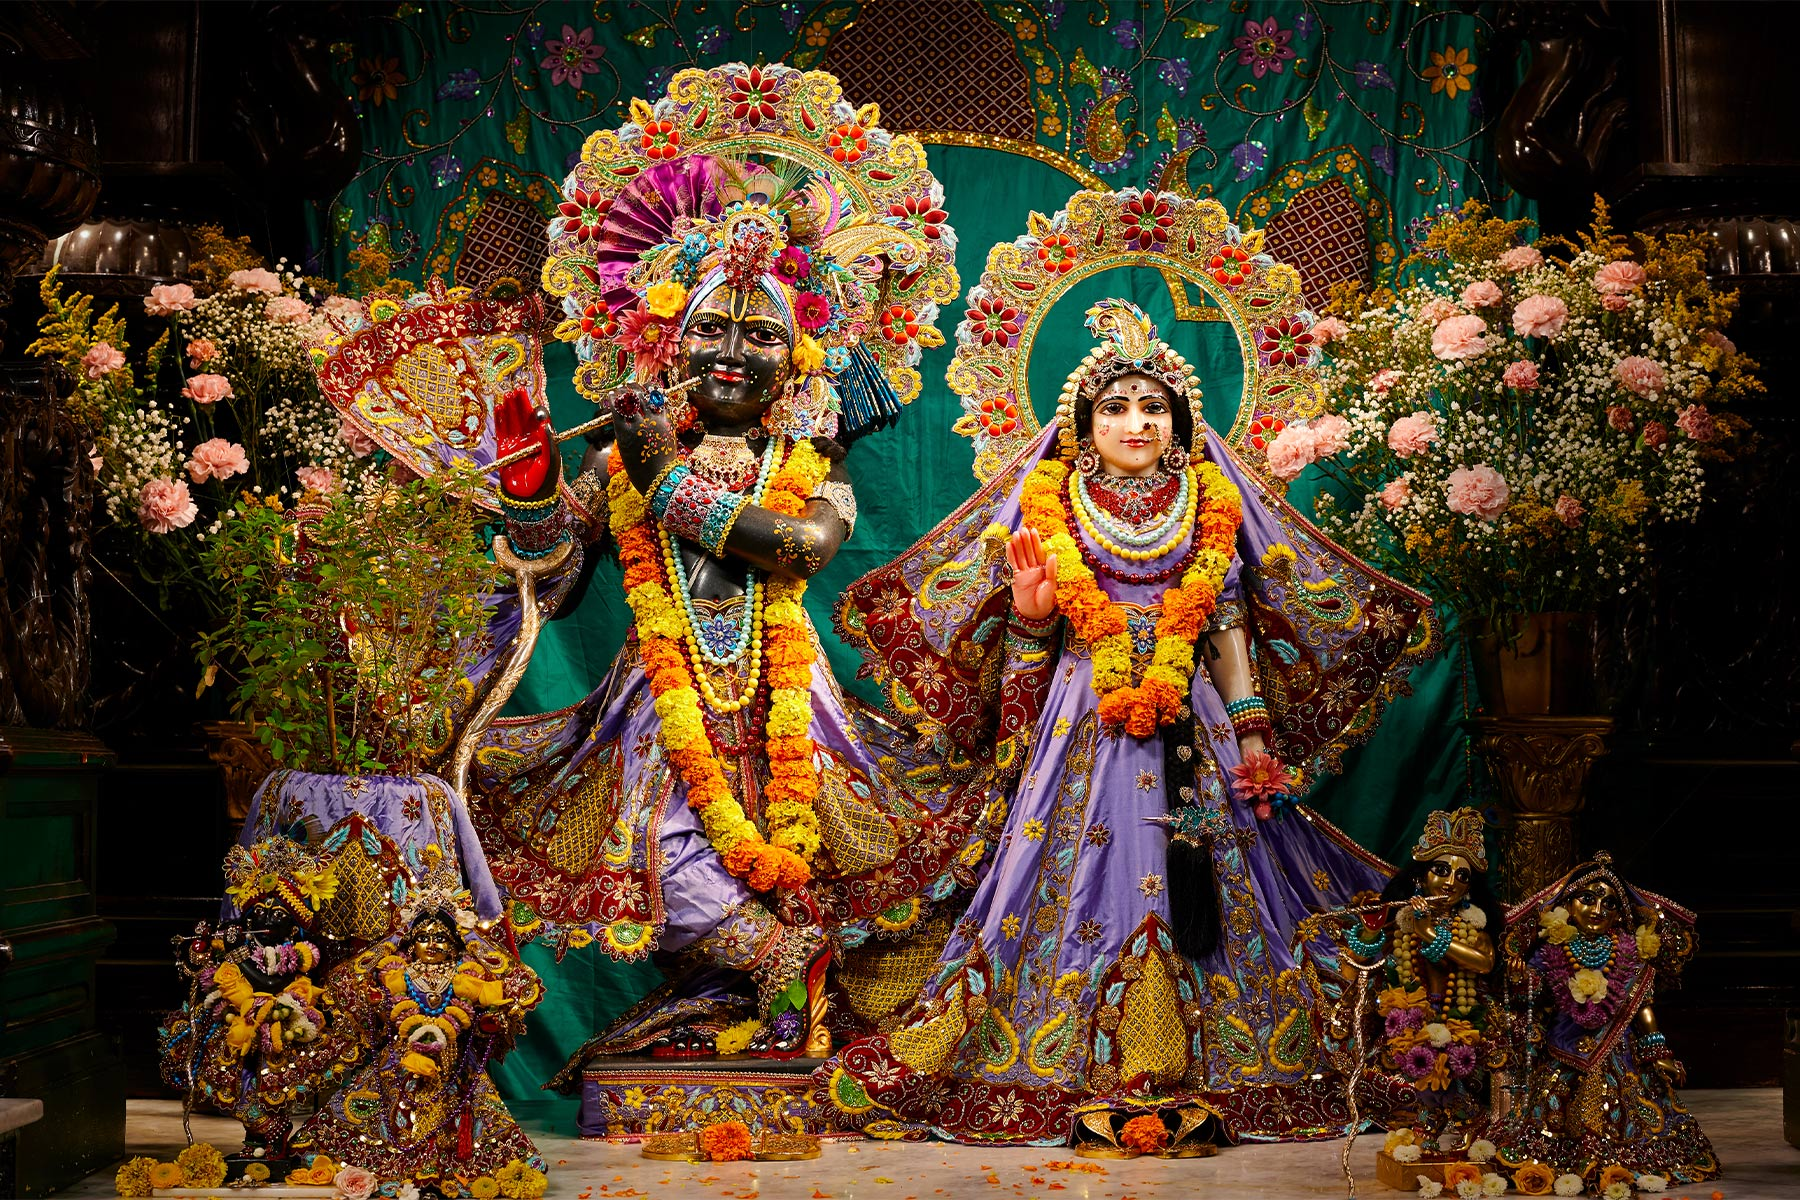 Statues of Krishna and His Female Counterpart Dressed in Purple